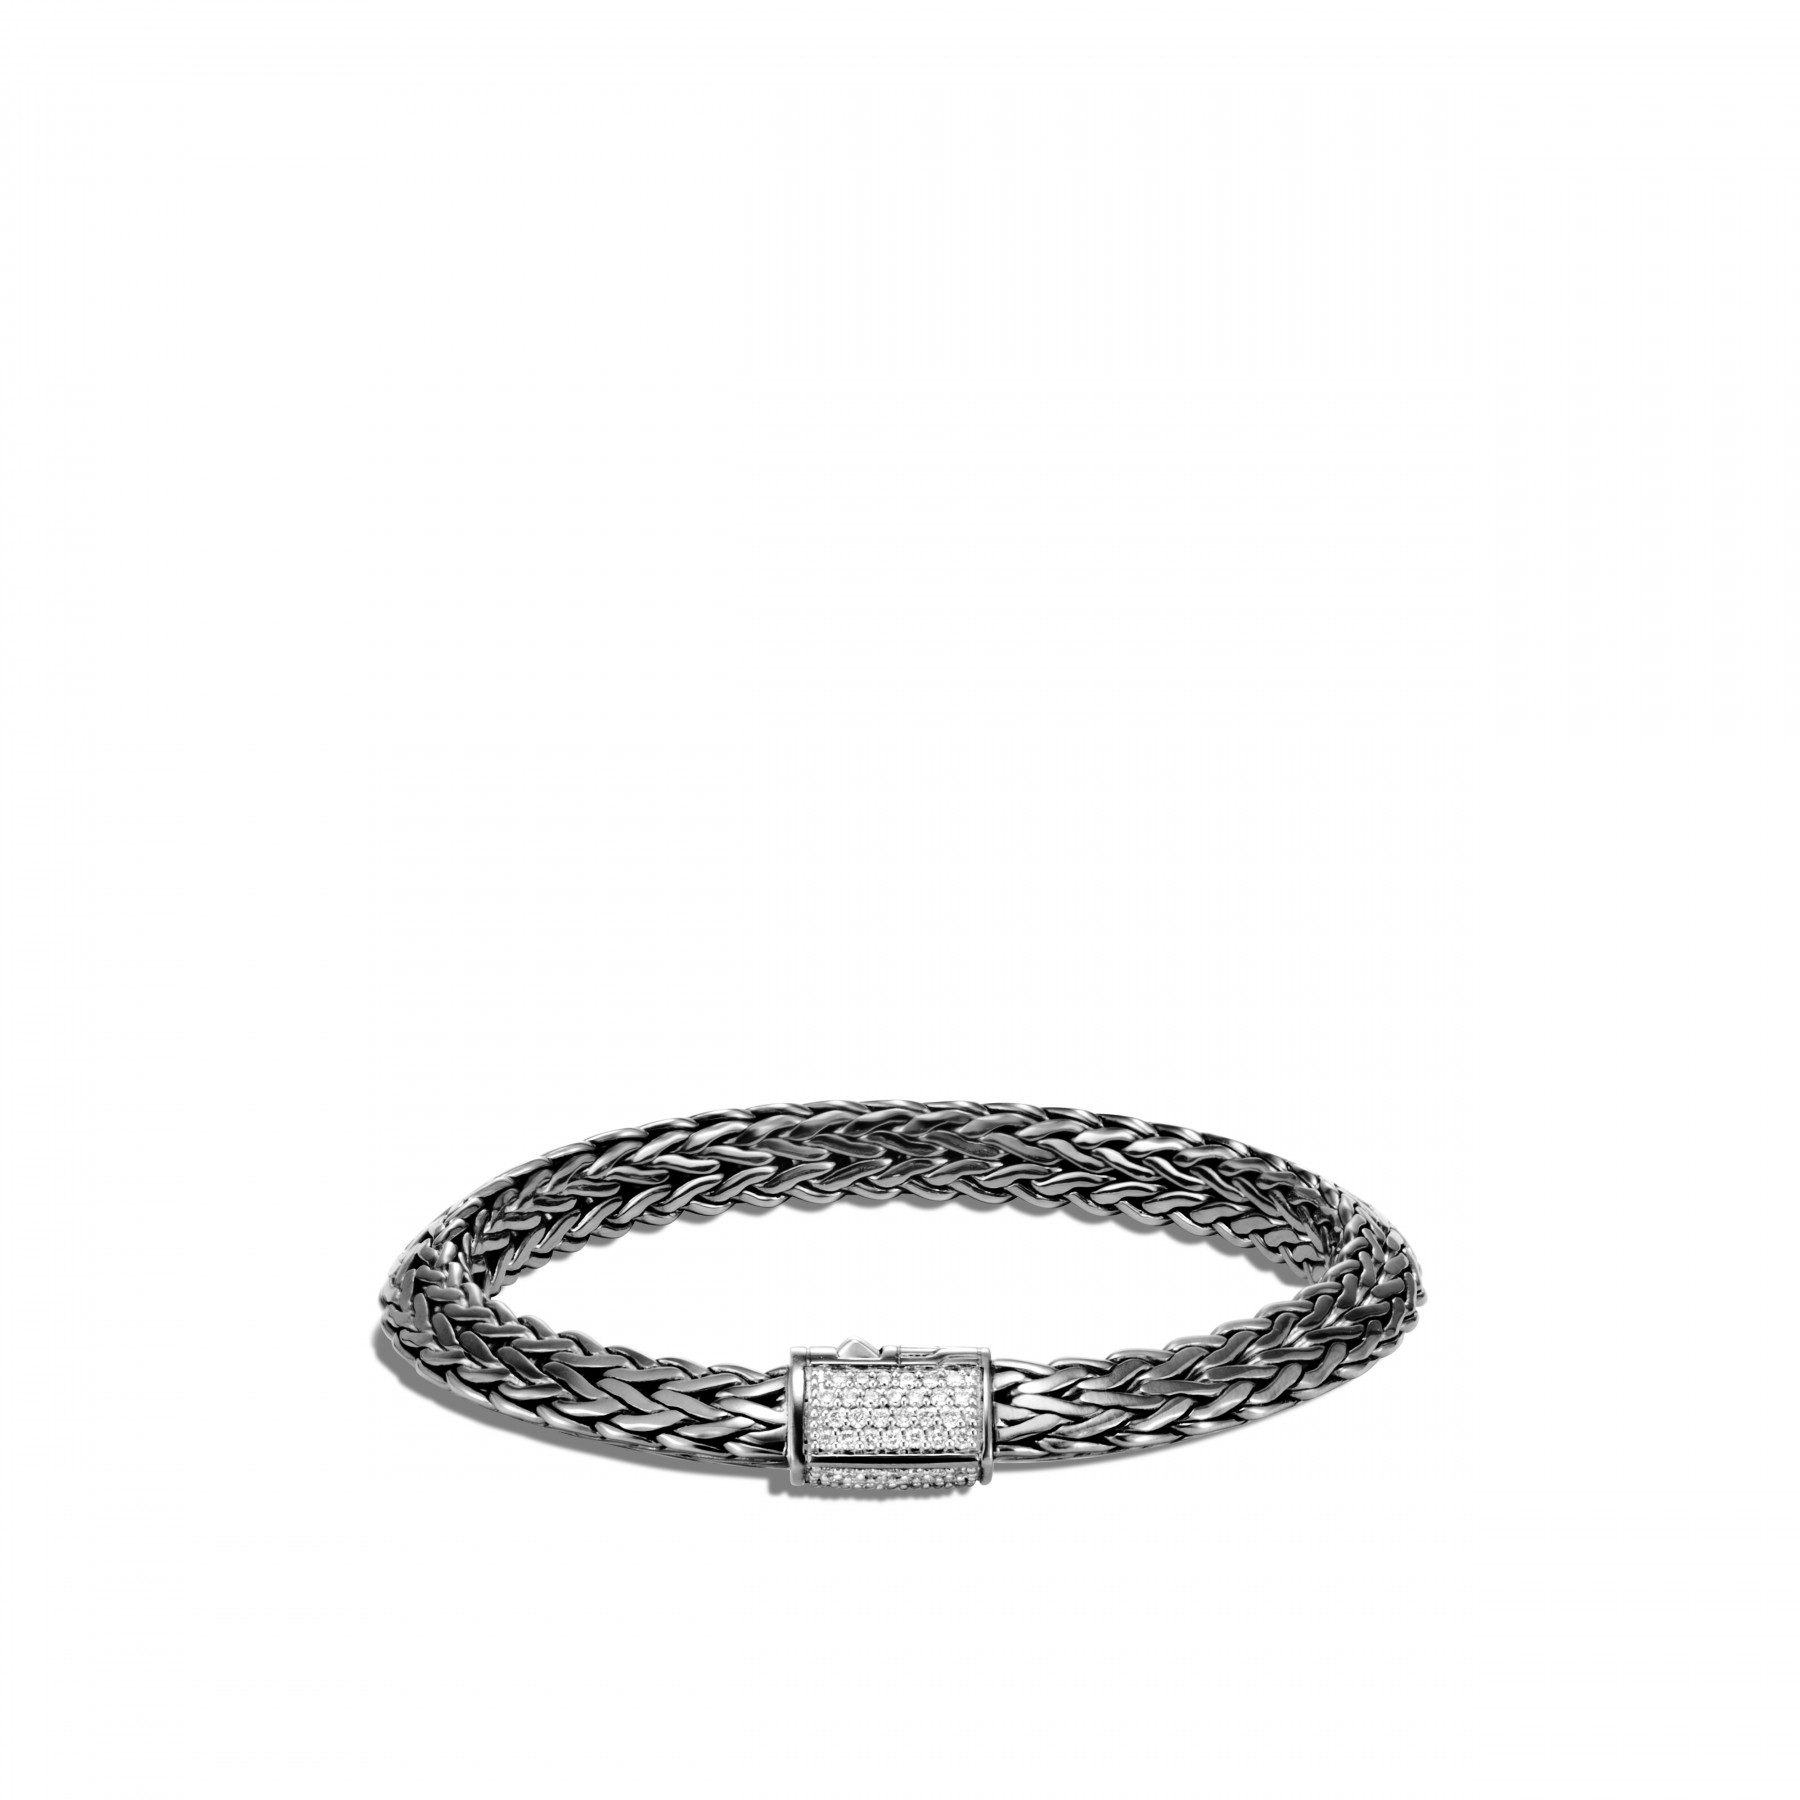 John Hardy Classic Chain Diamond and Black Rhodium Bracelet - 8mm front view